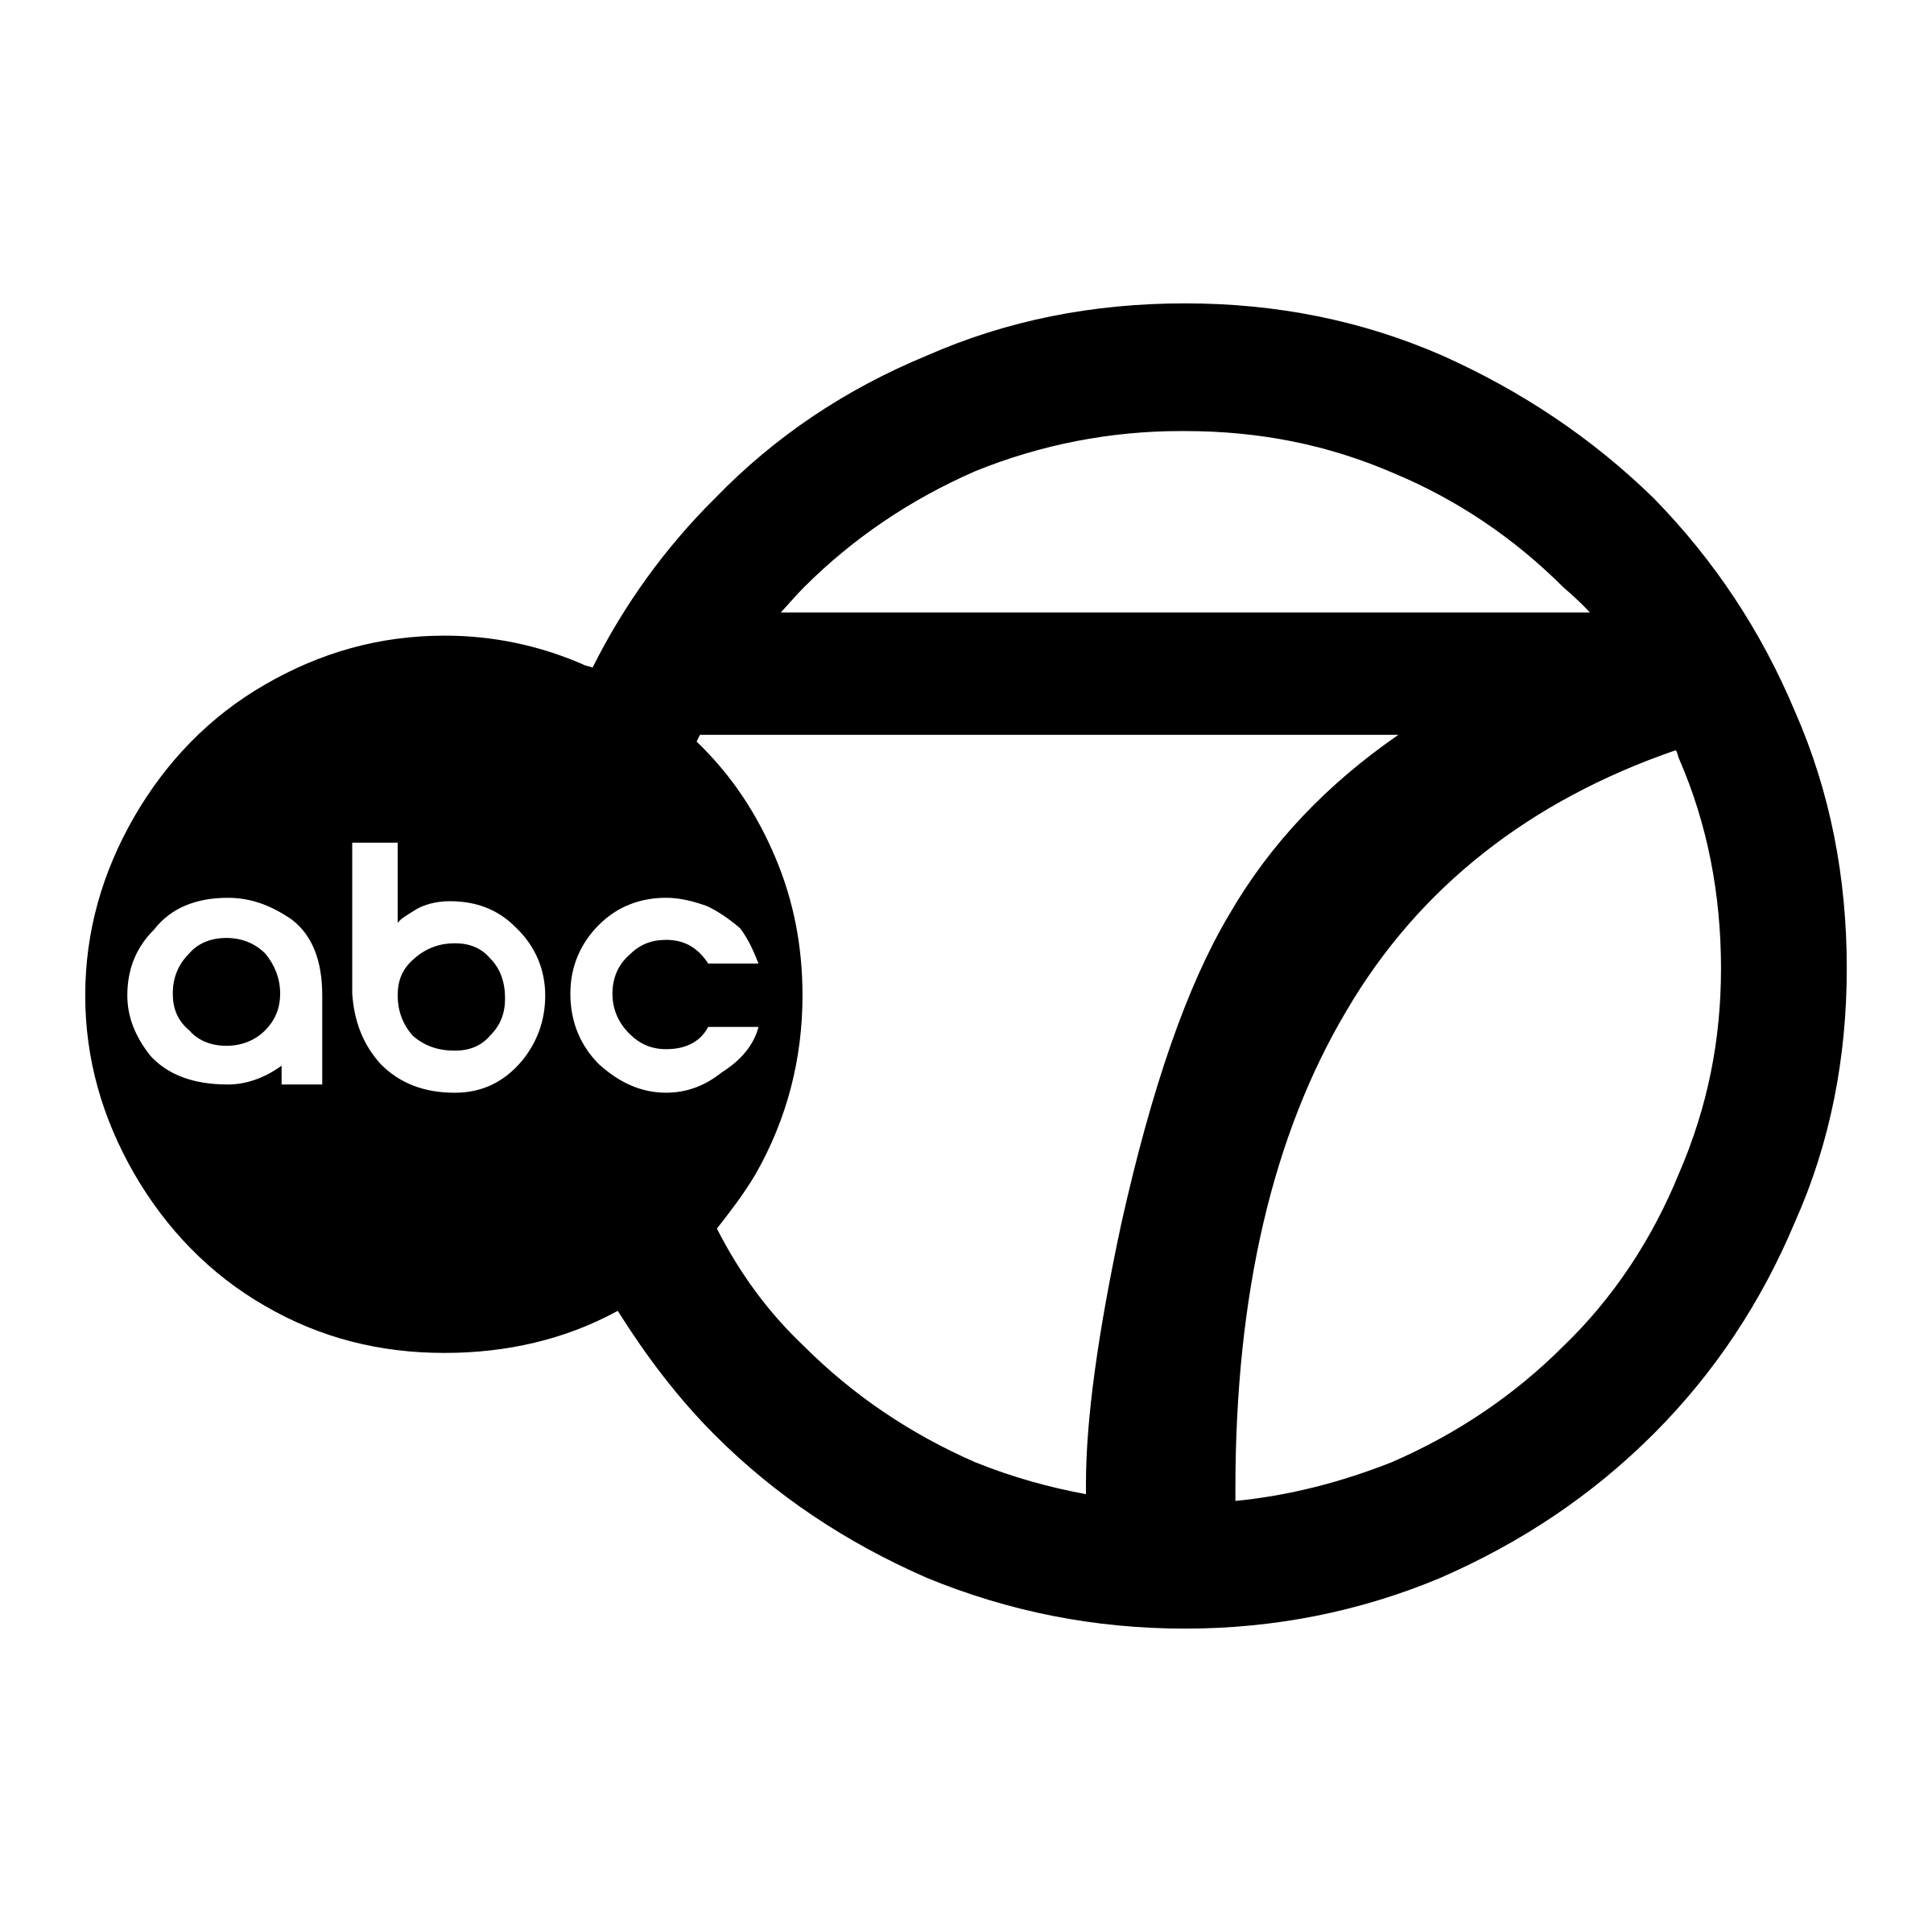 abc-7-2-logo-png-transparent.png